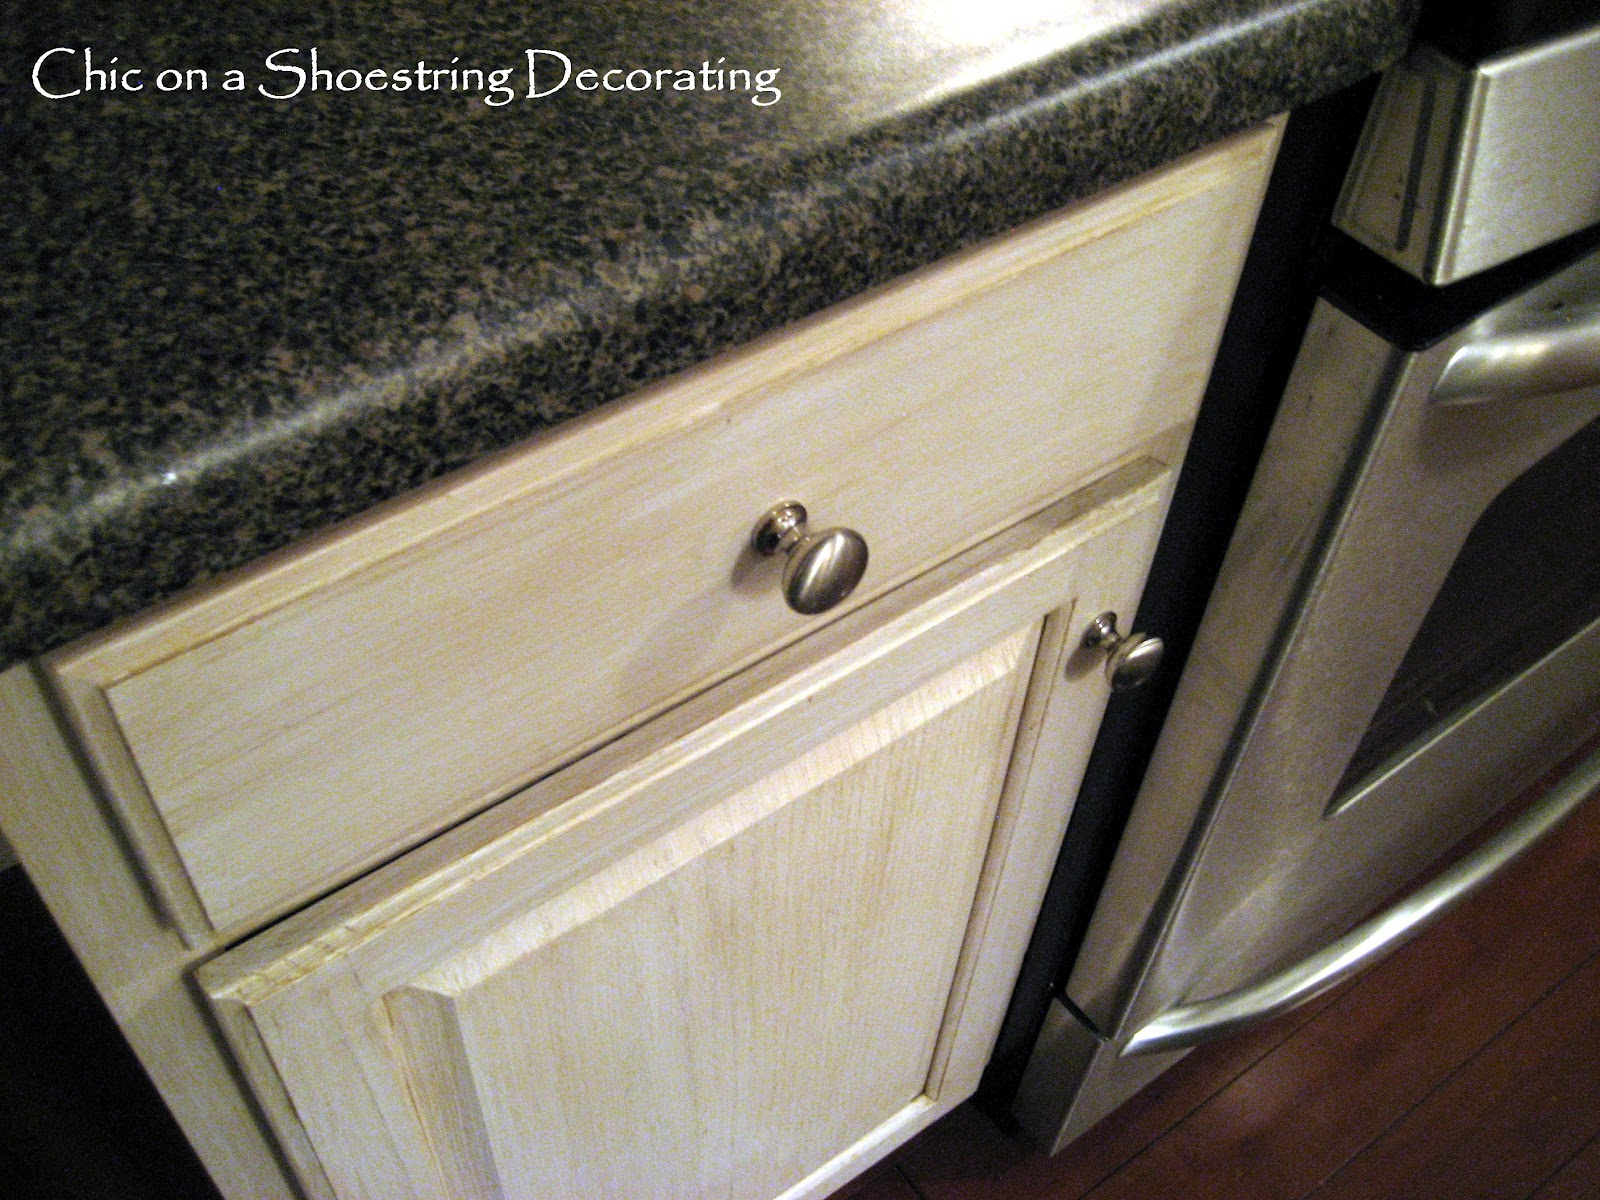 Stainless Steel Kitchen Cabinet Hardware | Home Decorating ...